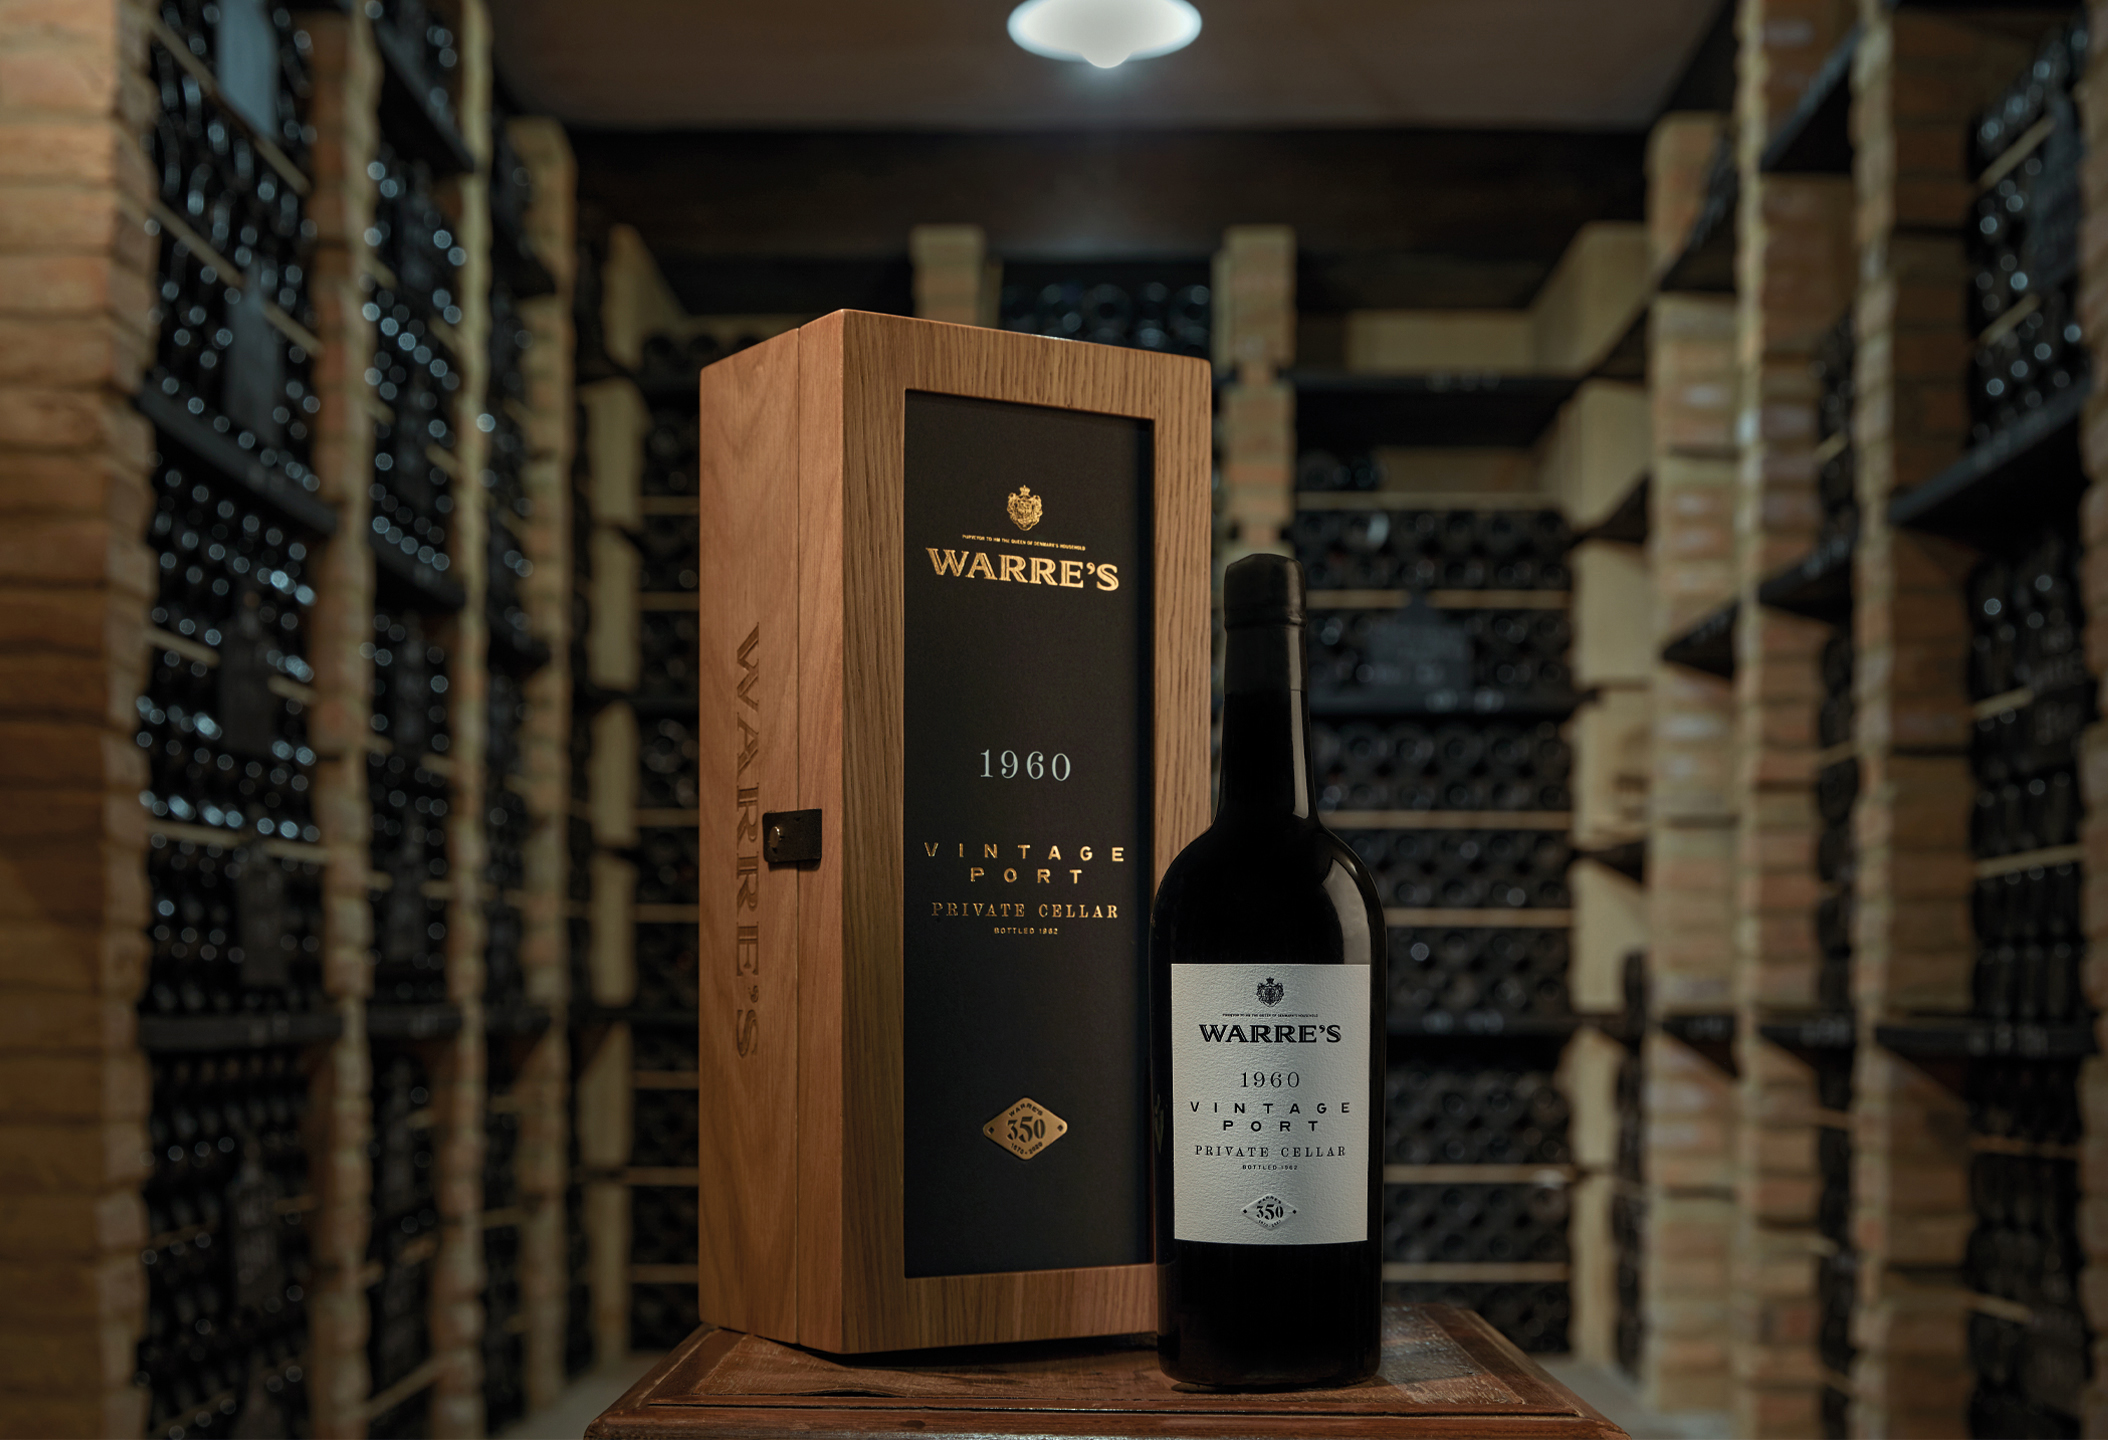 Volta Branding and Packaging Design Opens the Doors of Warre's Private Cellar